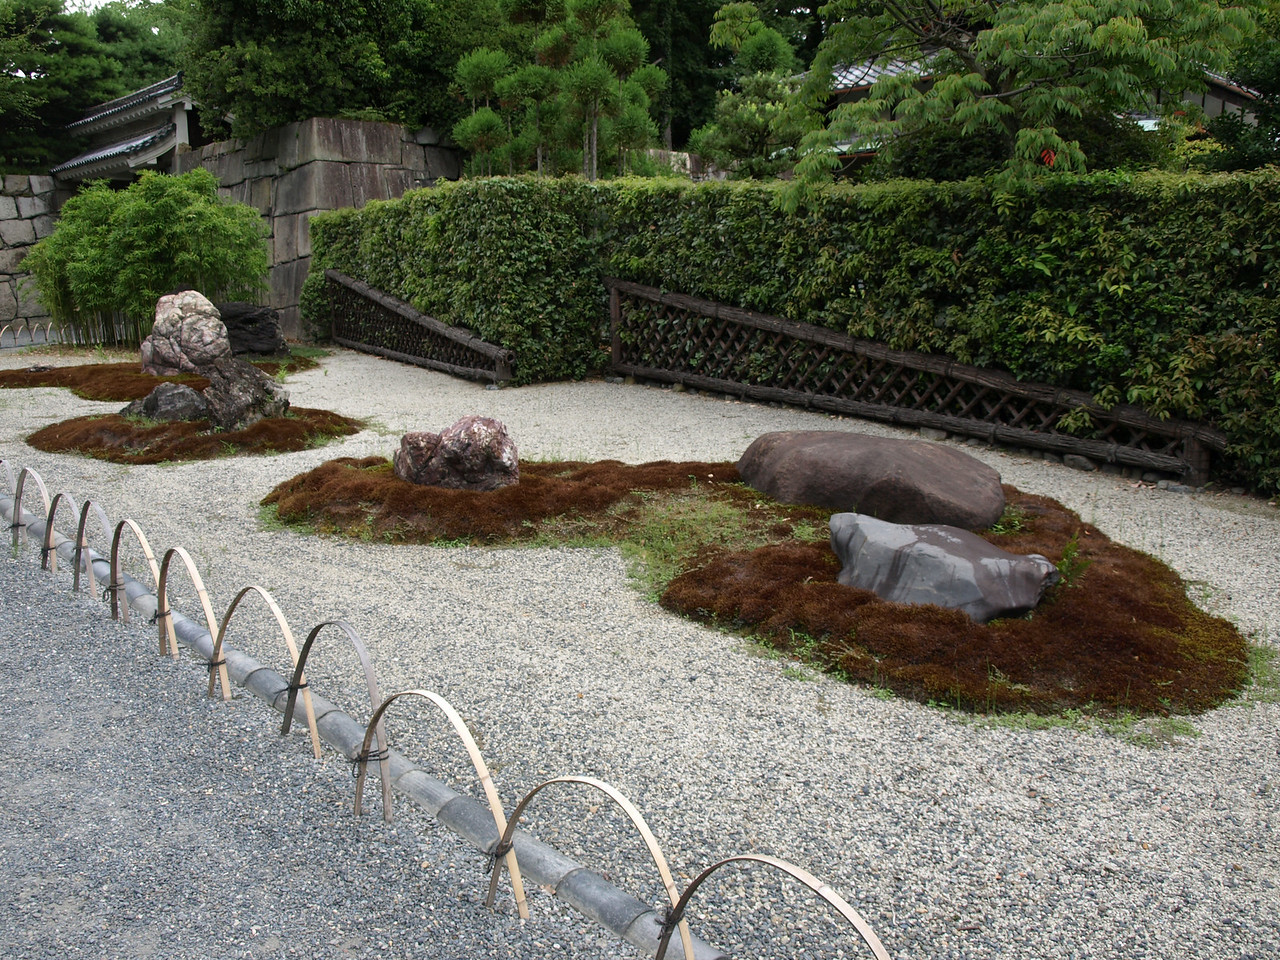 Another view of the Nijo Castle rock garden